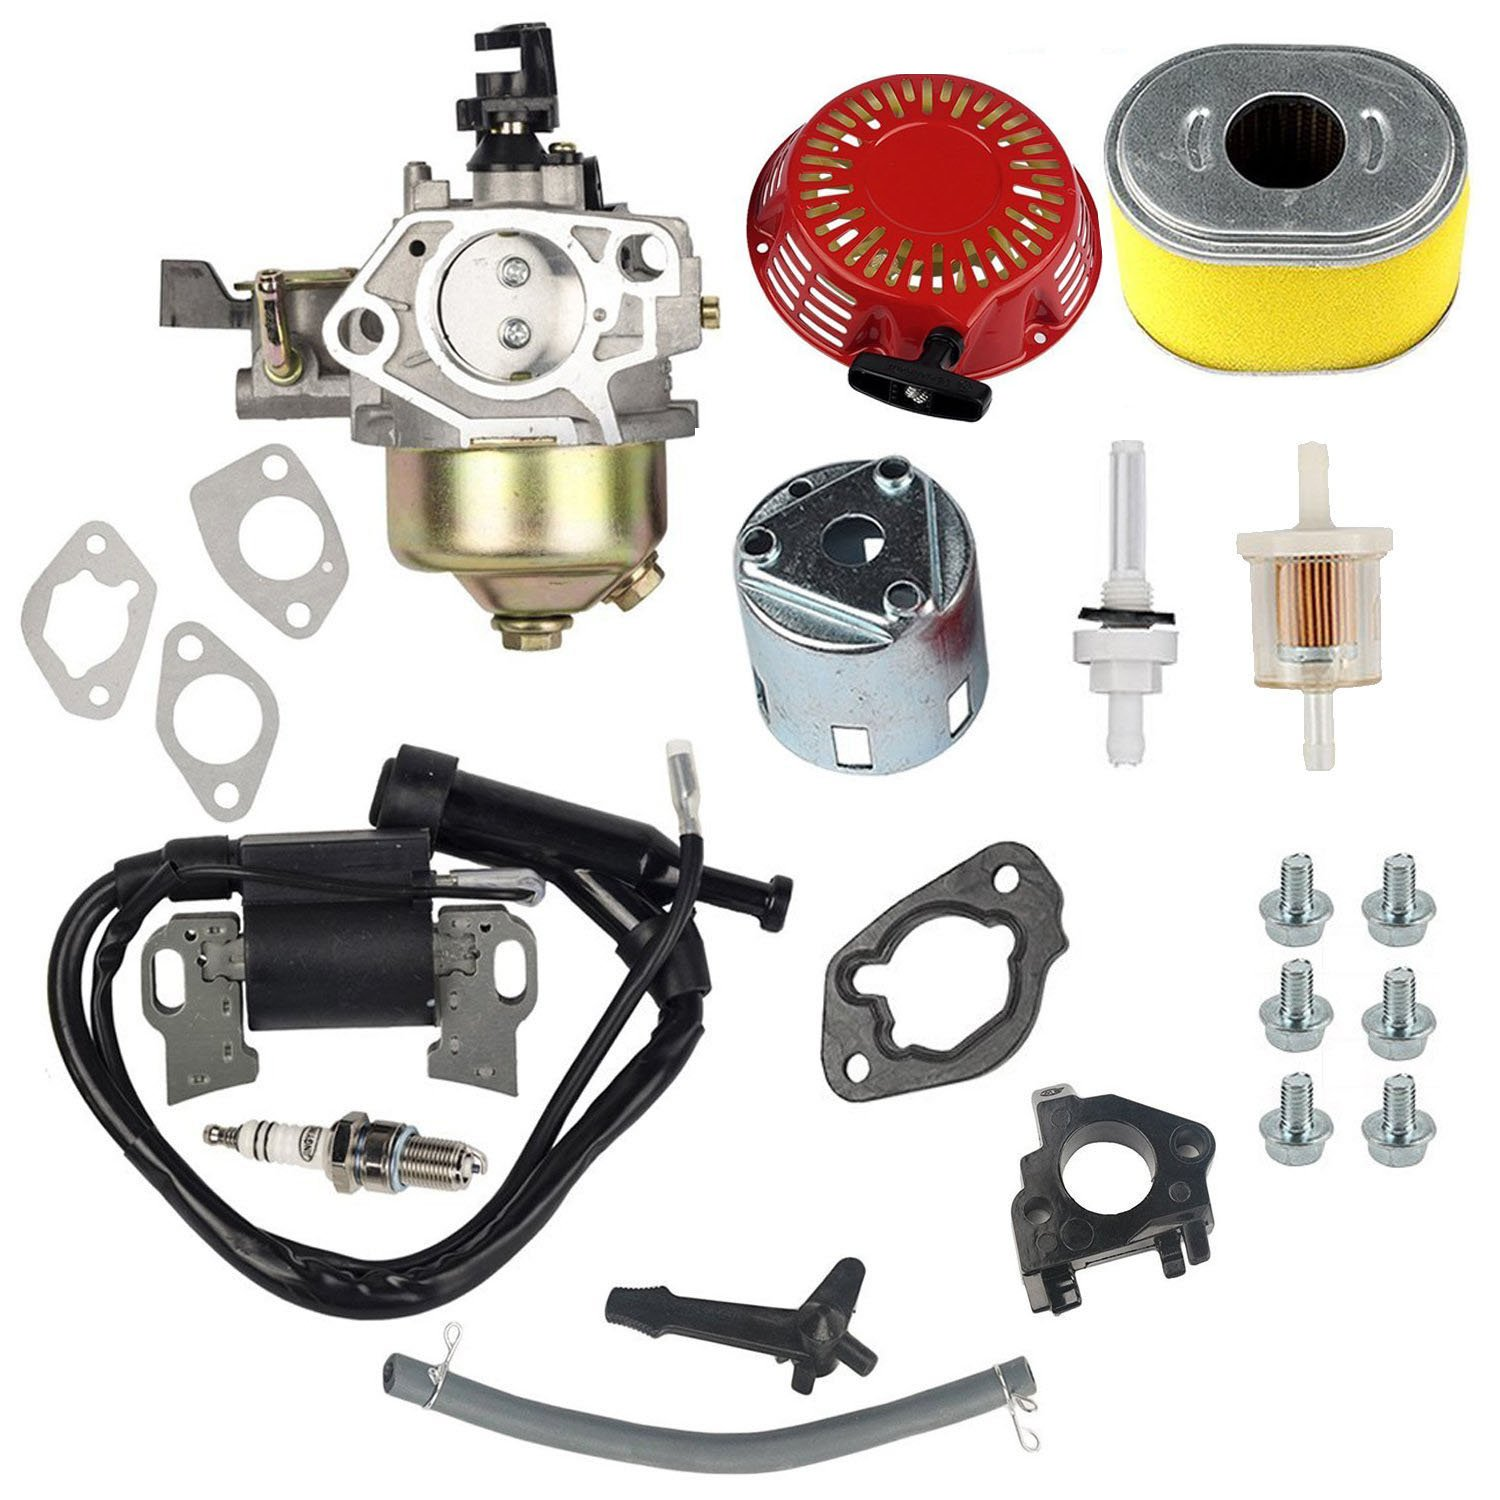 Honda Lawn Mower Fuel Filter Oxoxo Carburetor Ignition Coil Recoil Starter Spark Plug Air Jonit For Gx340 Gx390 11hp 13hp Engine